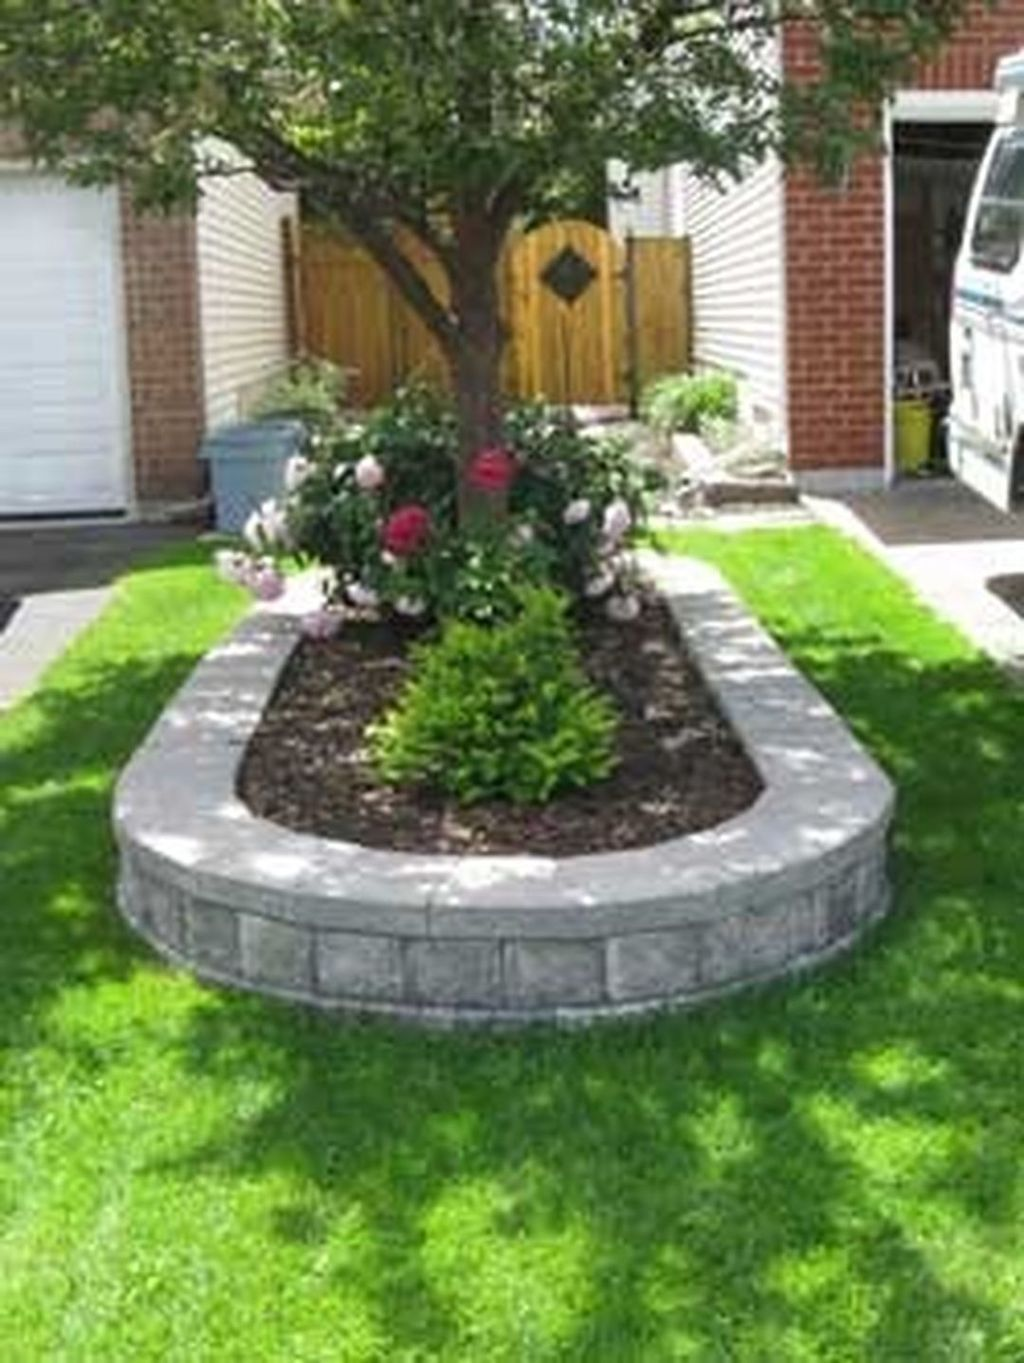 34 beautiful flower beds in front of house design ideas in